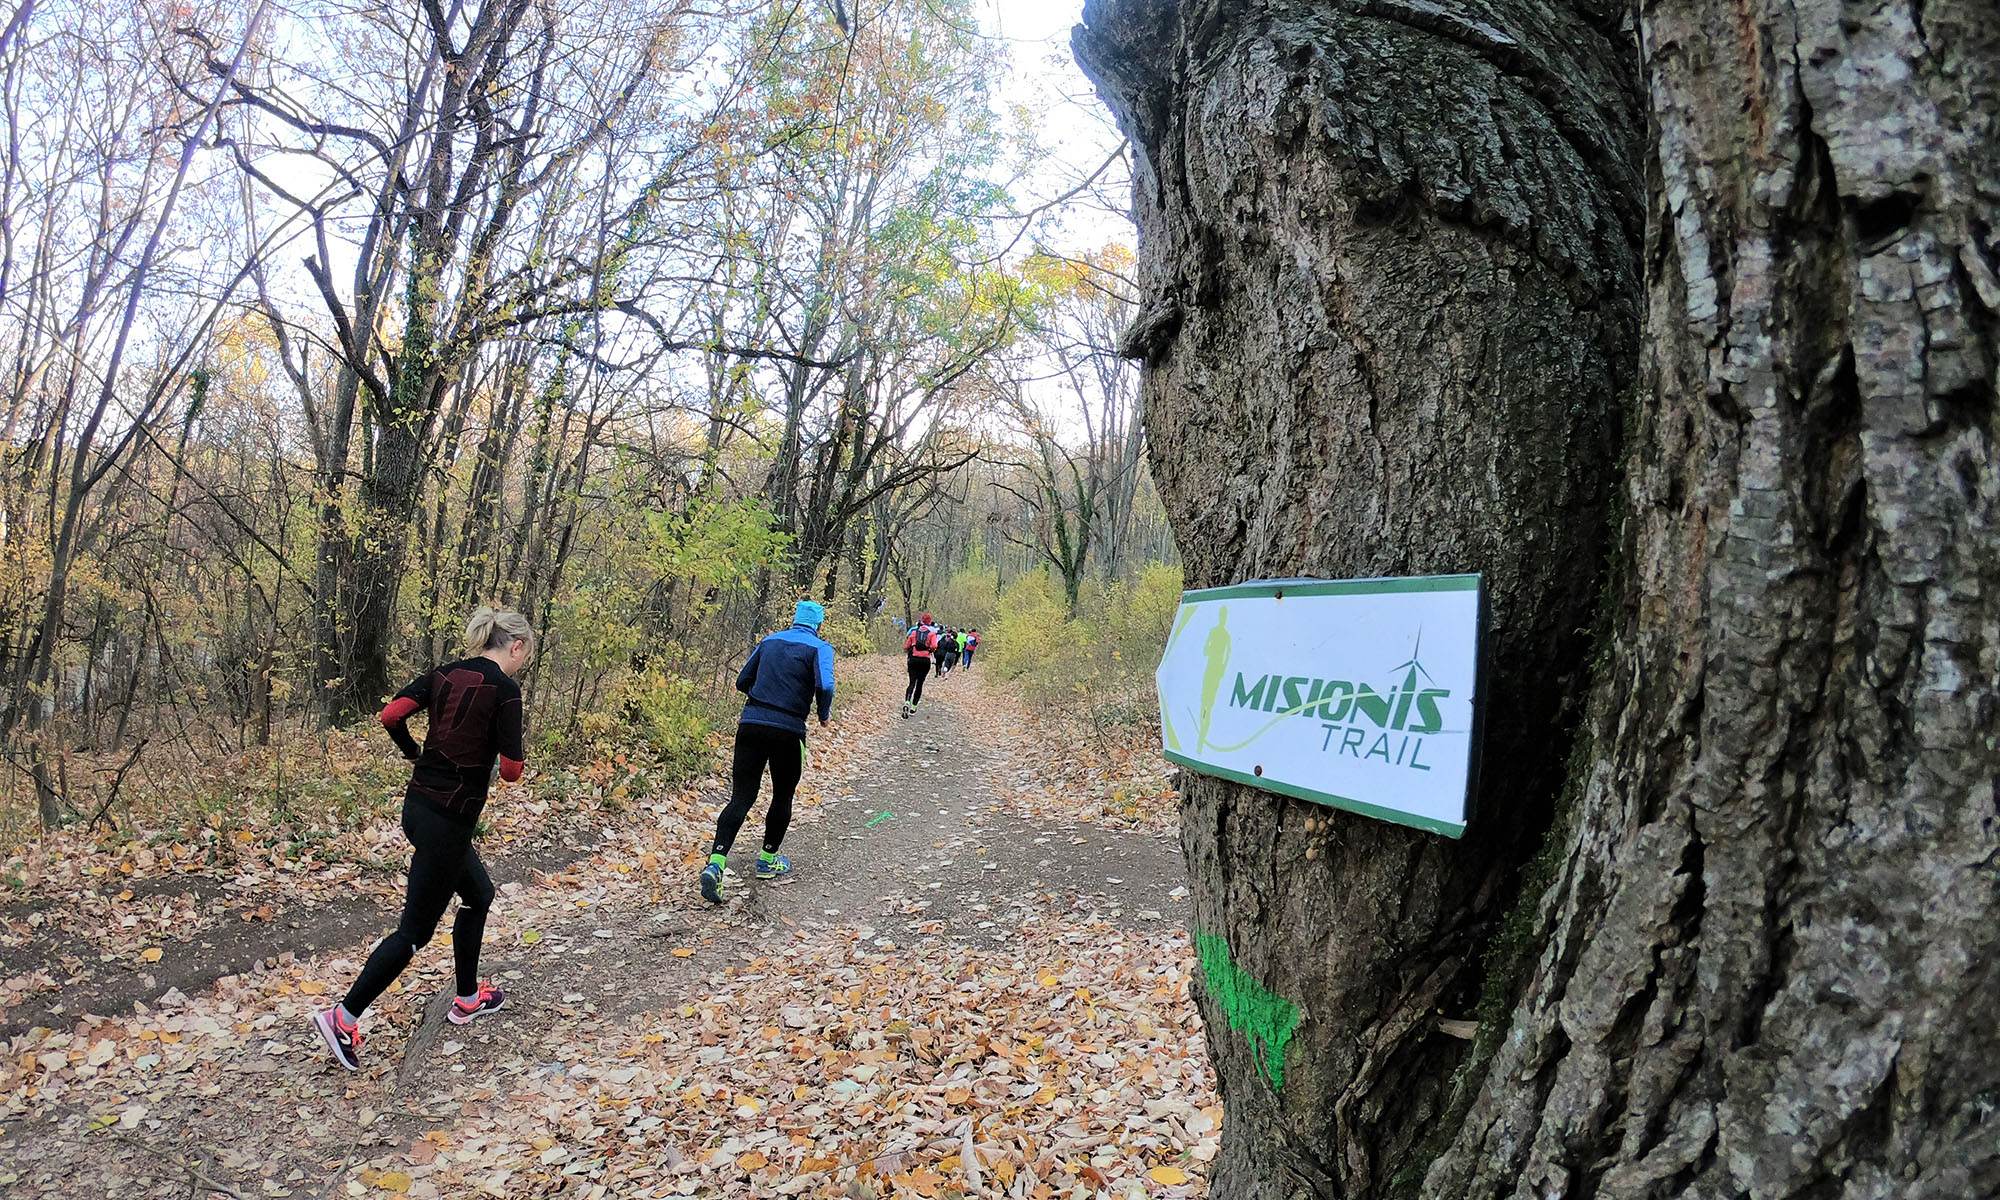 Misionis Trail